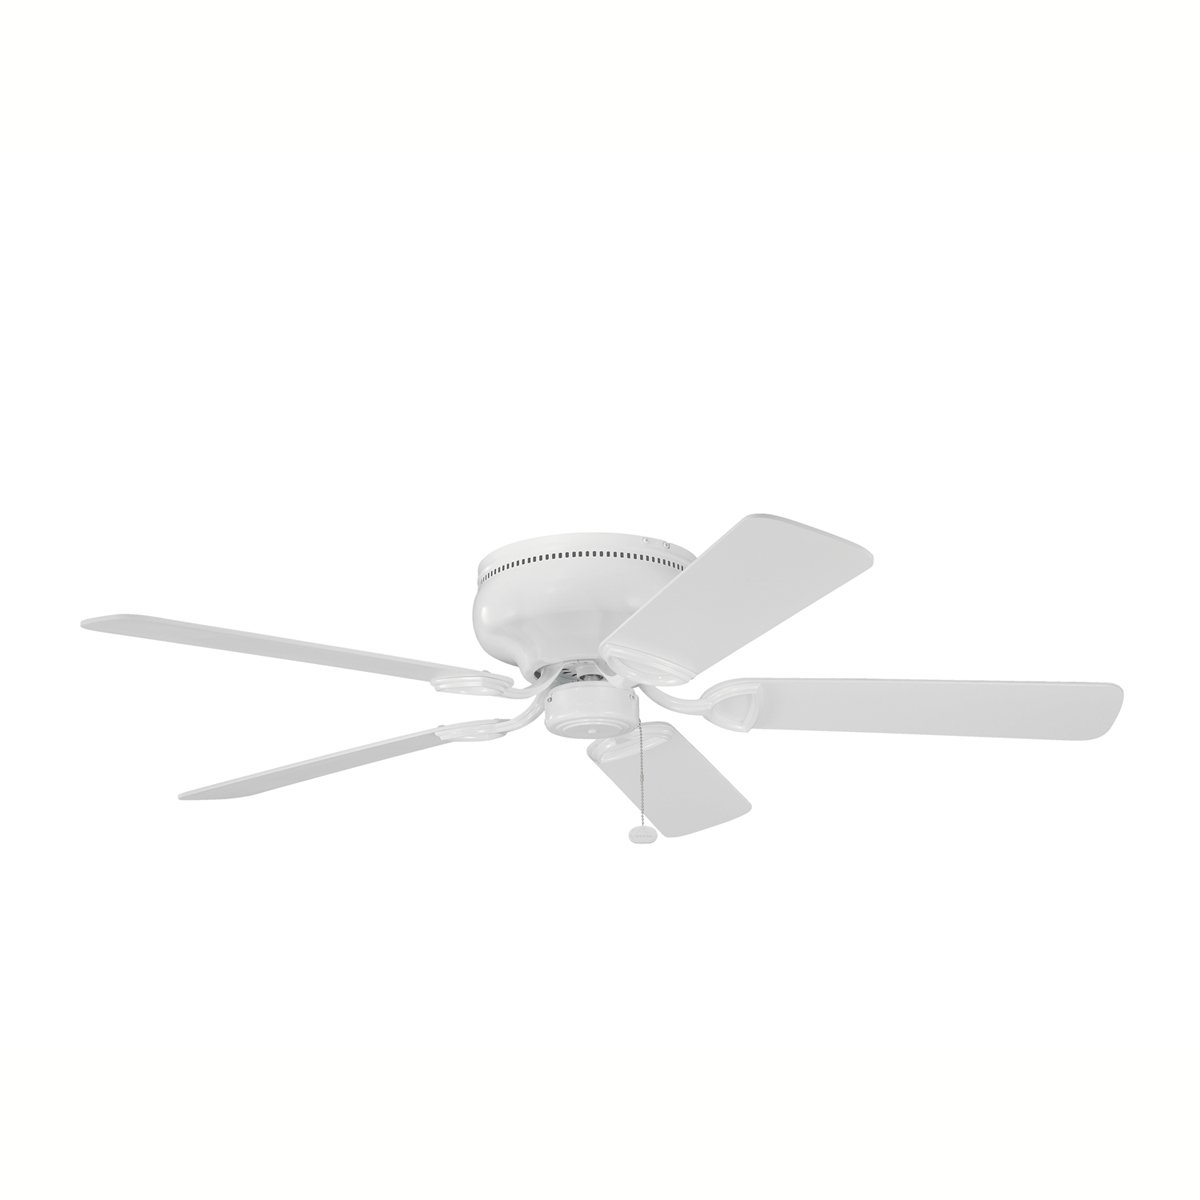 Kichler BSS 42 Ceiling Fan Flush Mount Ceiling Fan